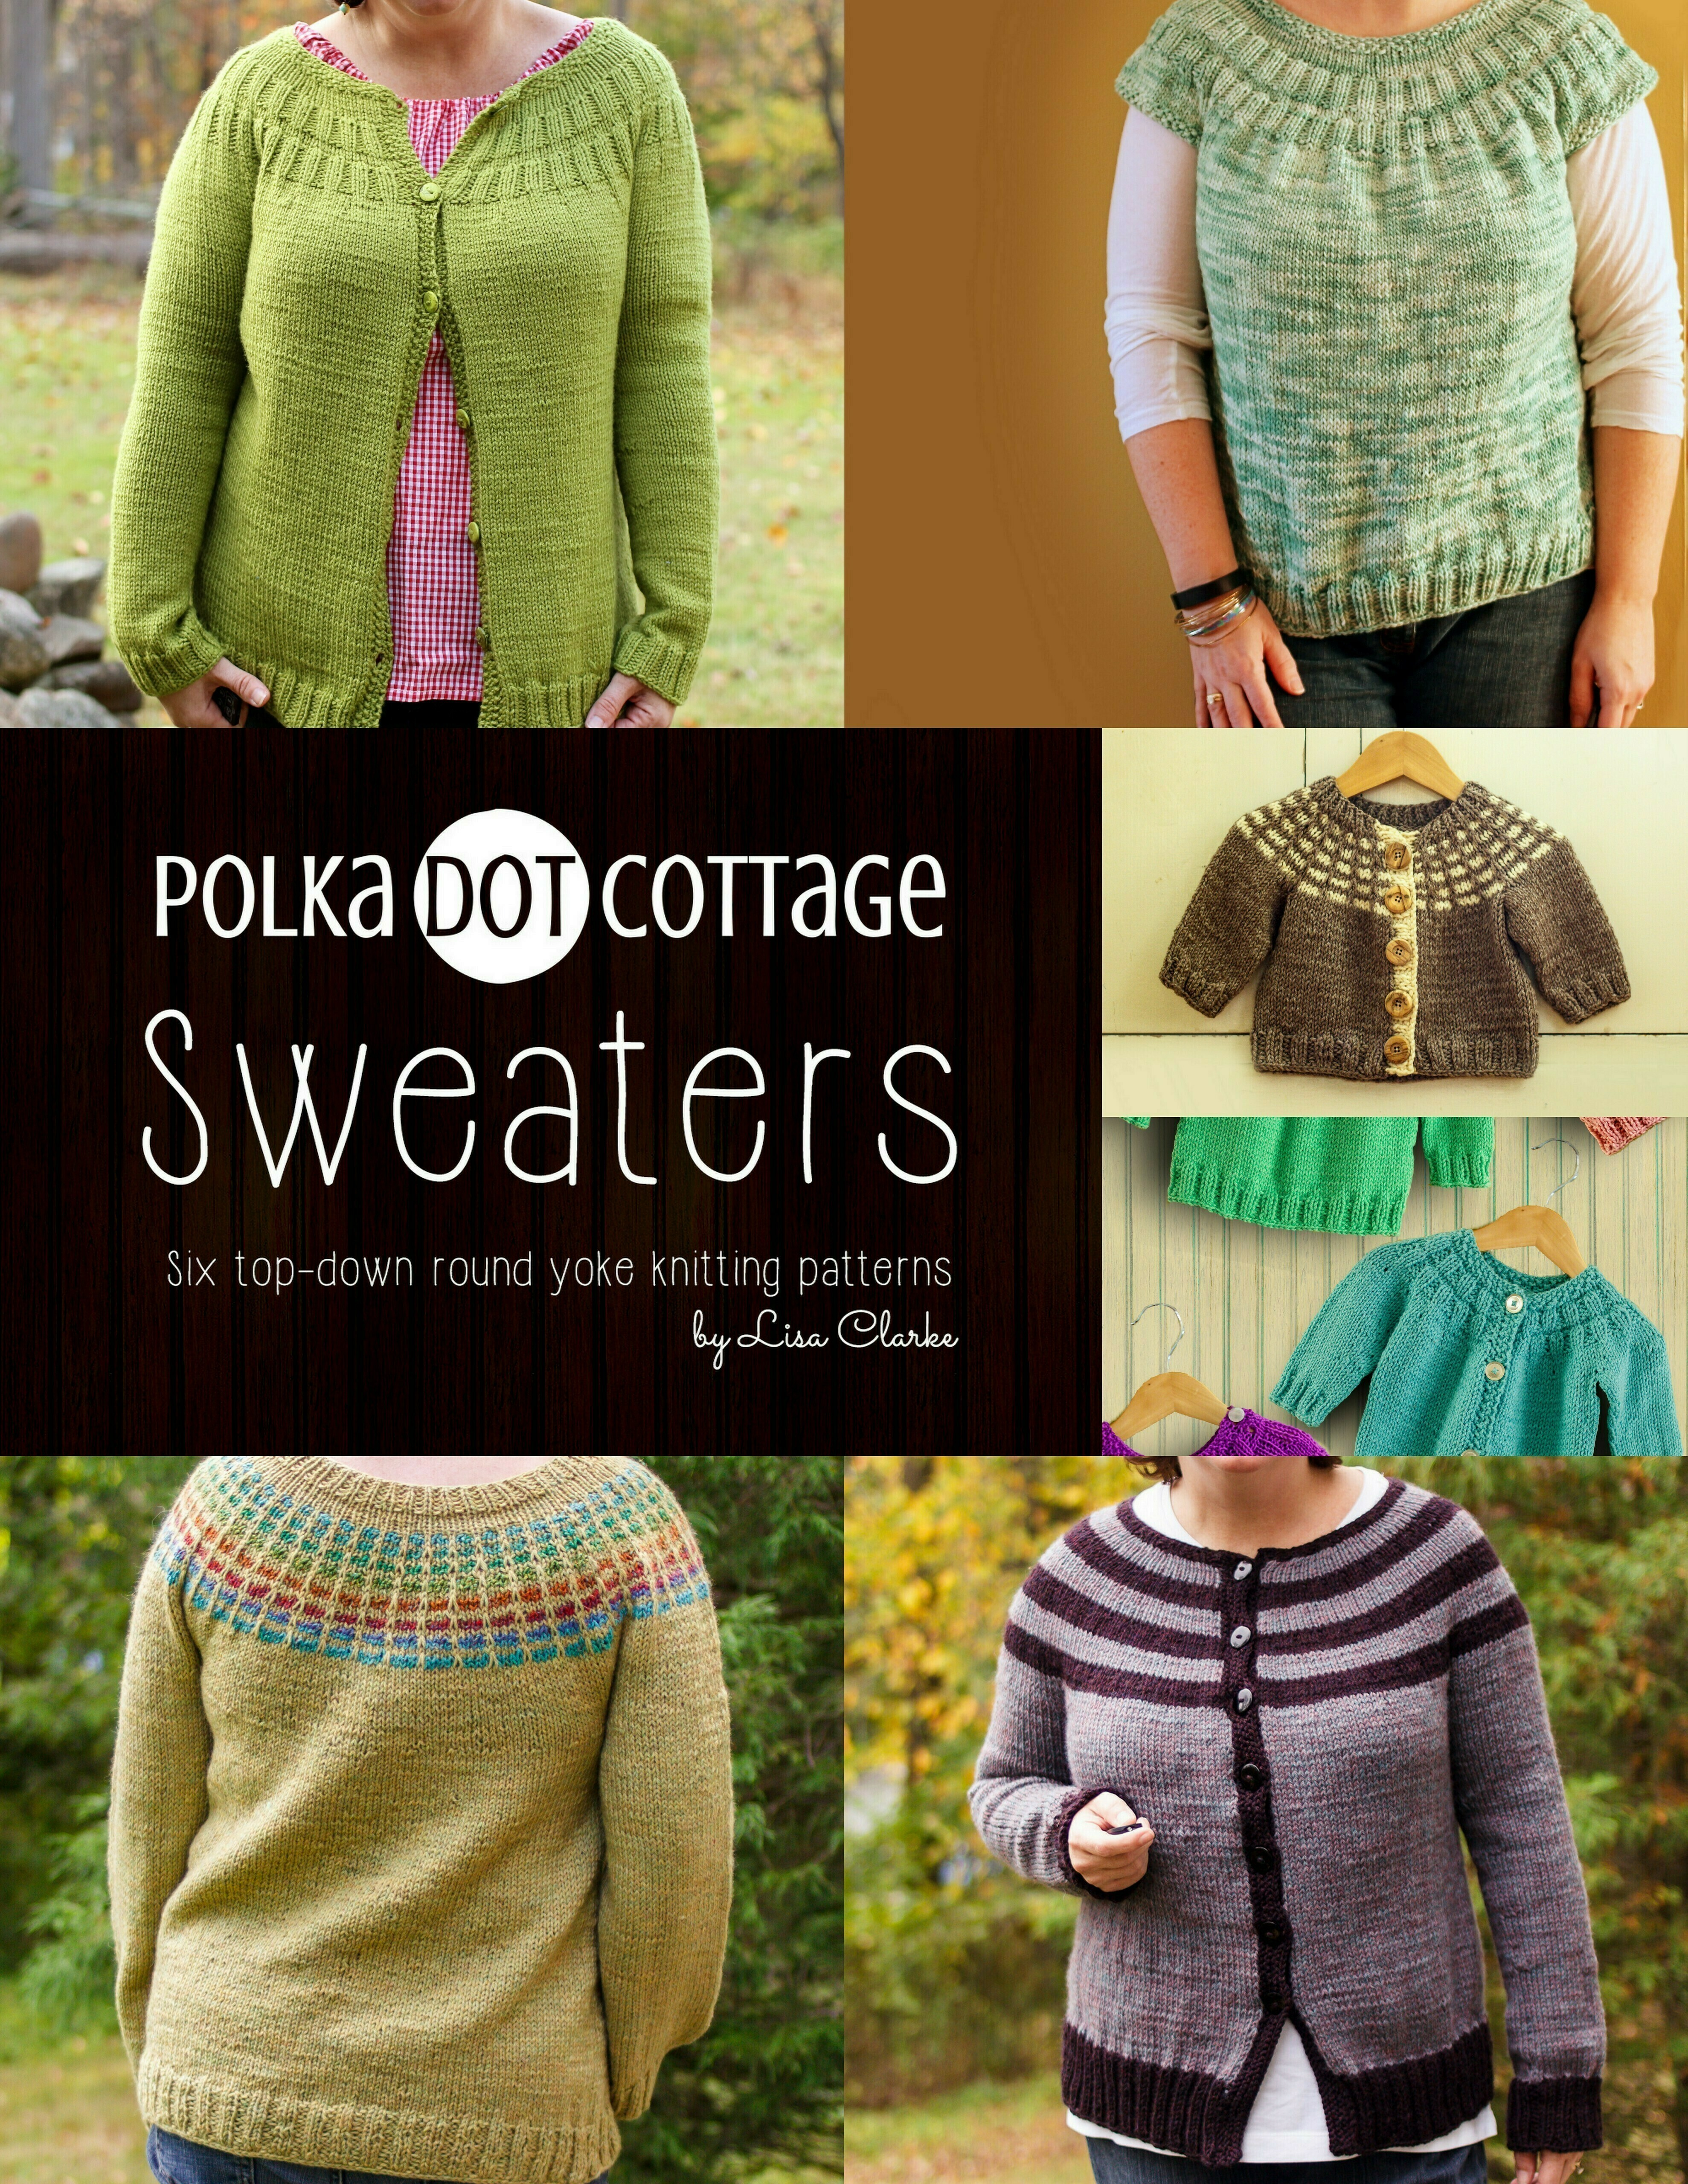 Polka Dot Cottage Sweaters: A collection of top-dow, round yoke knitting patterns